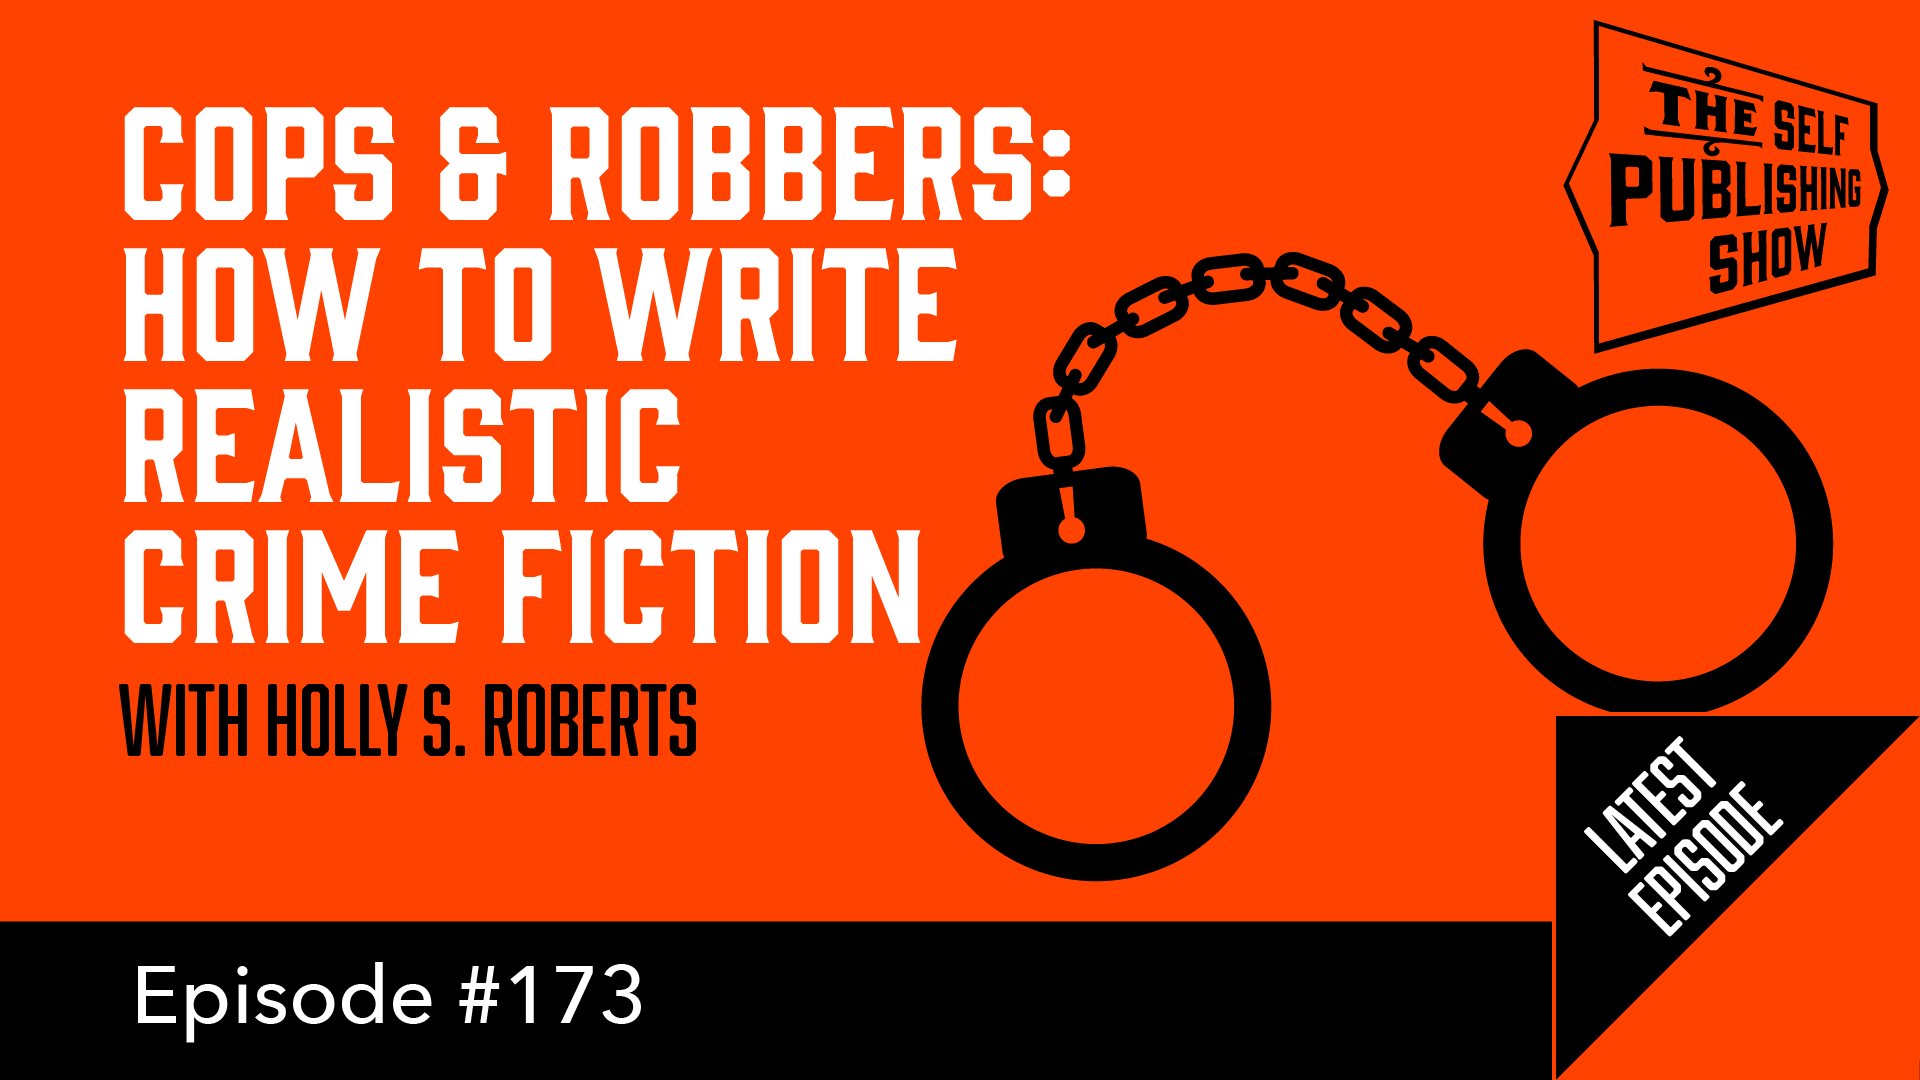 SPS-173: Cops & Robbers: How to Write Realistic Crime Fiction – with Holly S.Roberts